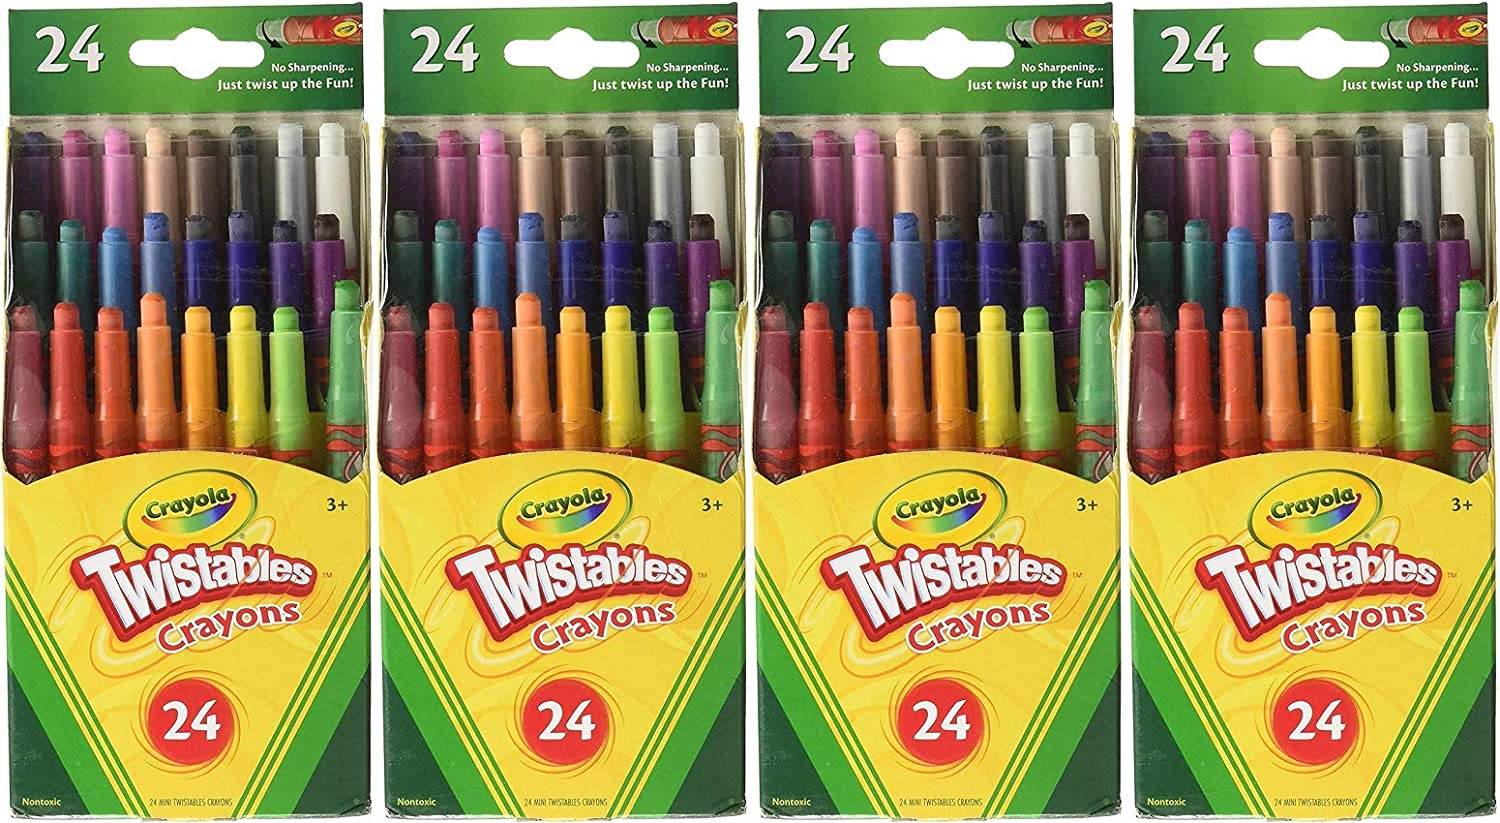 72 Crayons in Total Pack of 3 Crayola Mini Twistable Crayons 24 in a Box